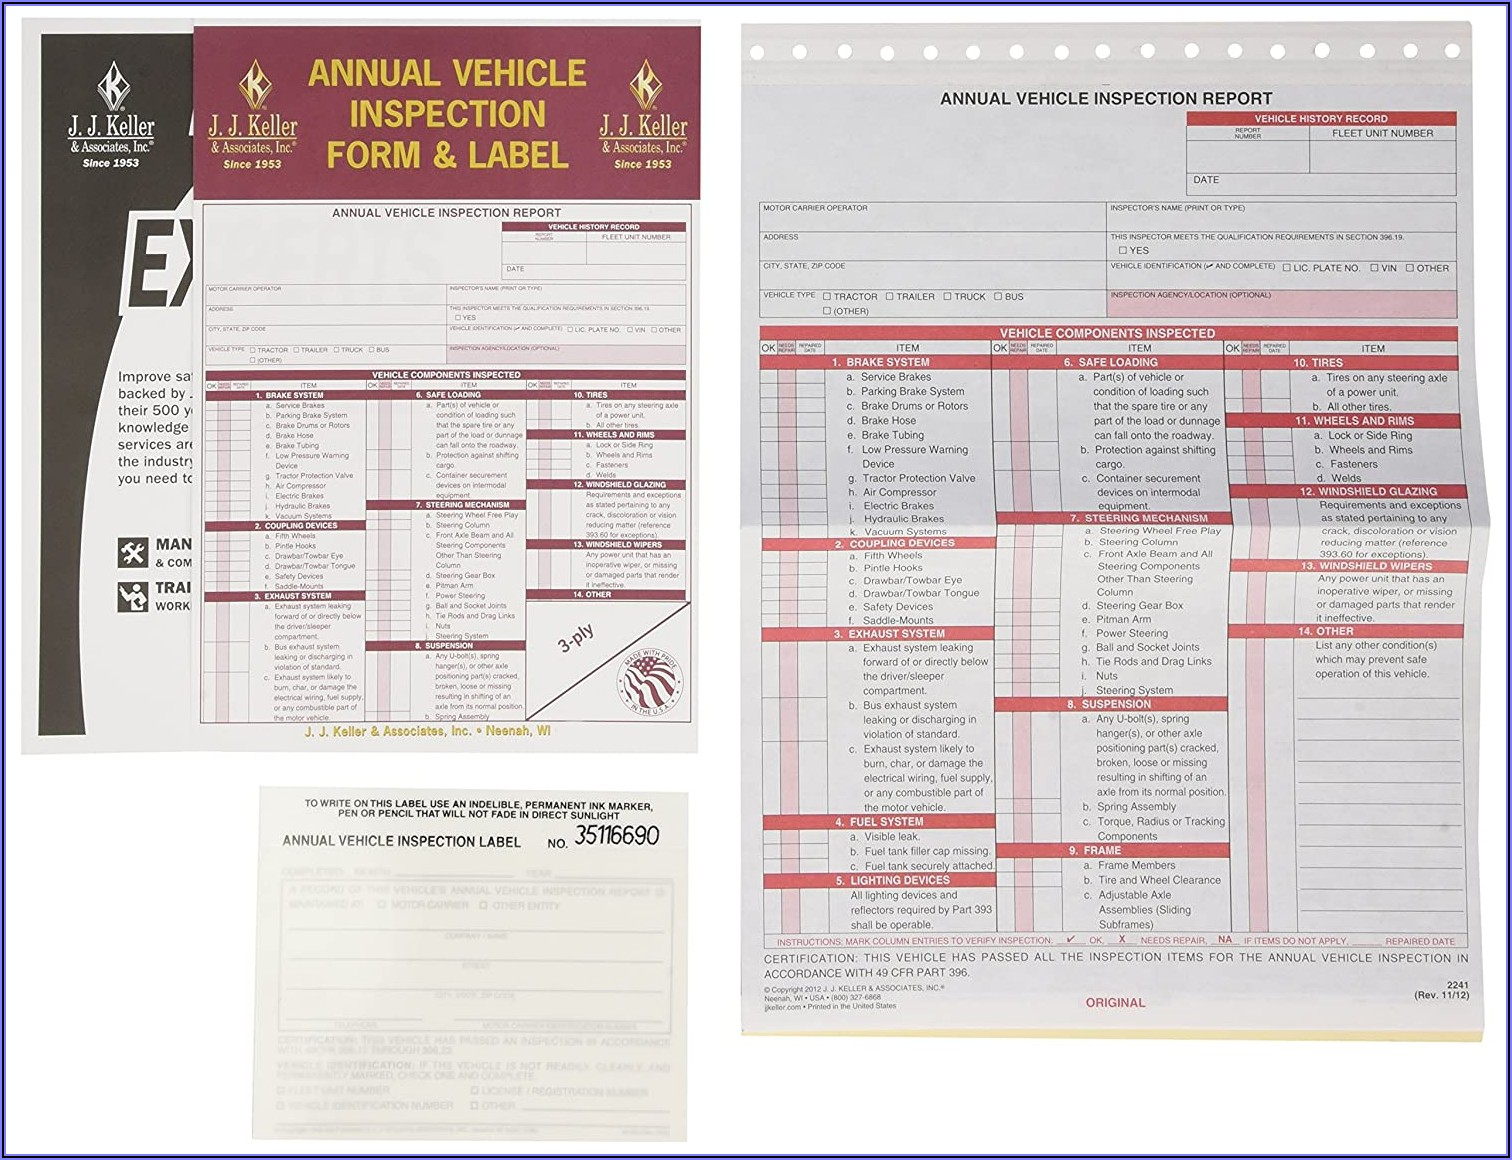 Annual Vehicle Inspection Report Forms